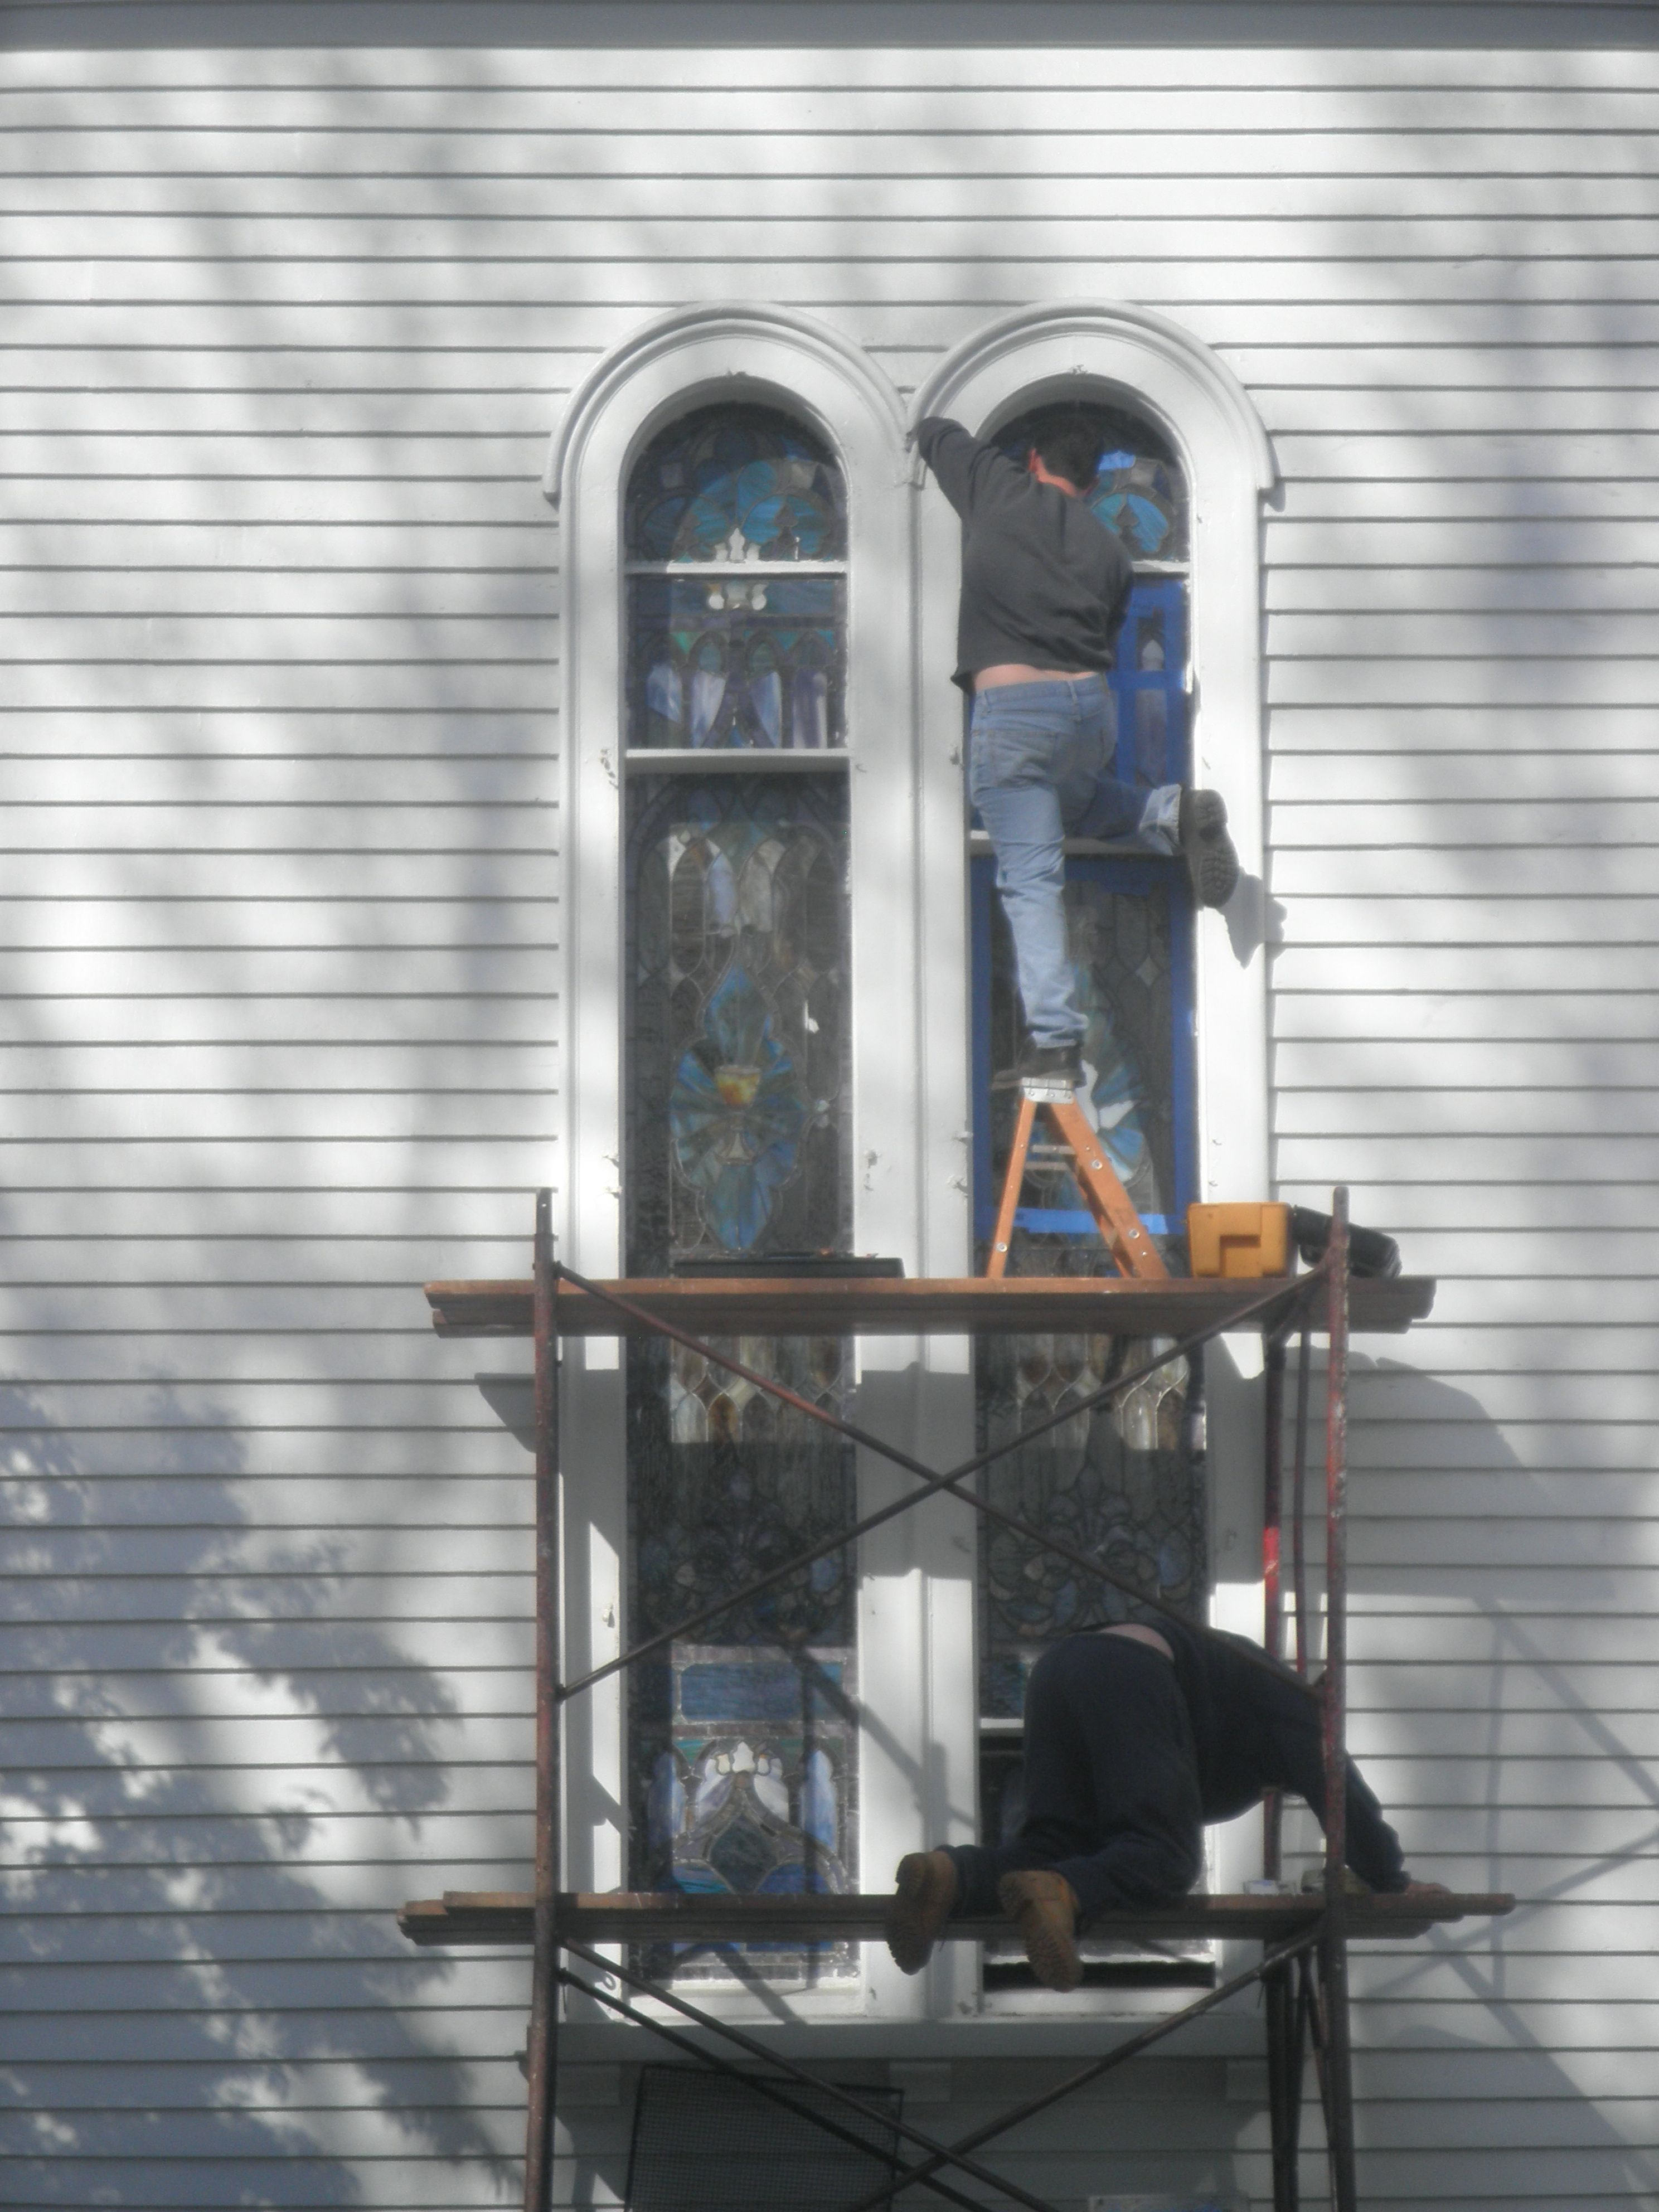 We removed 4 stained glass windows, brought them back to our studios, fully restored the windows and then reinstalled them into the front of the church giving an amazing look to the front of the church